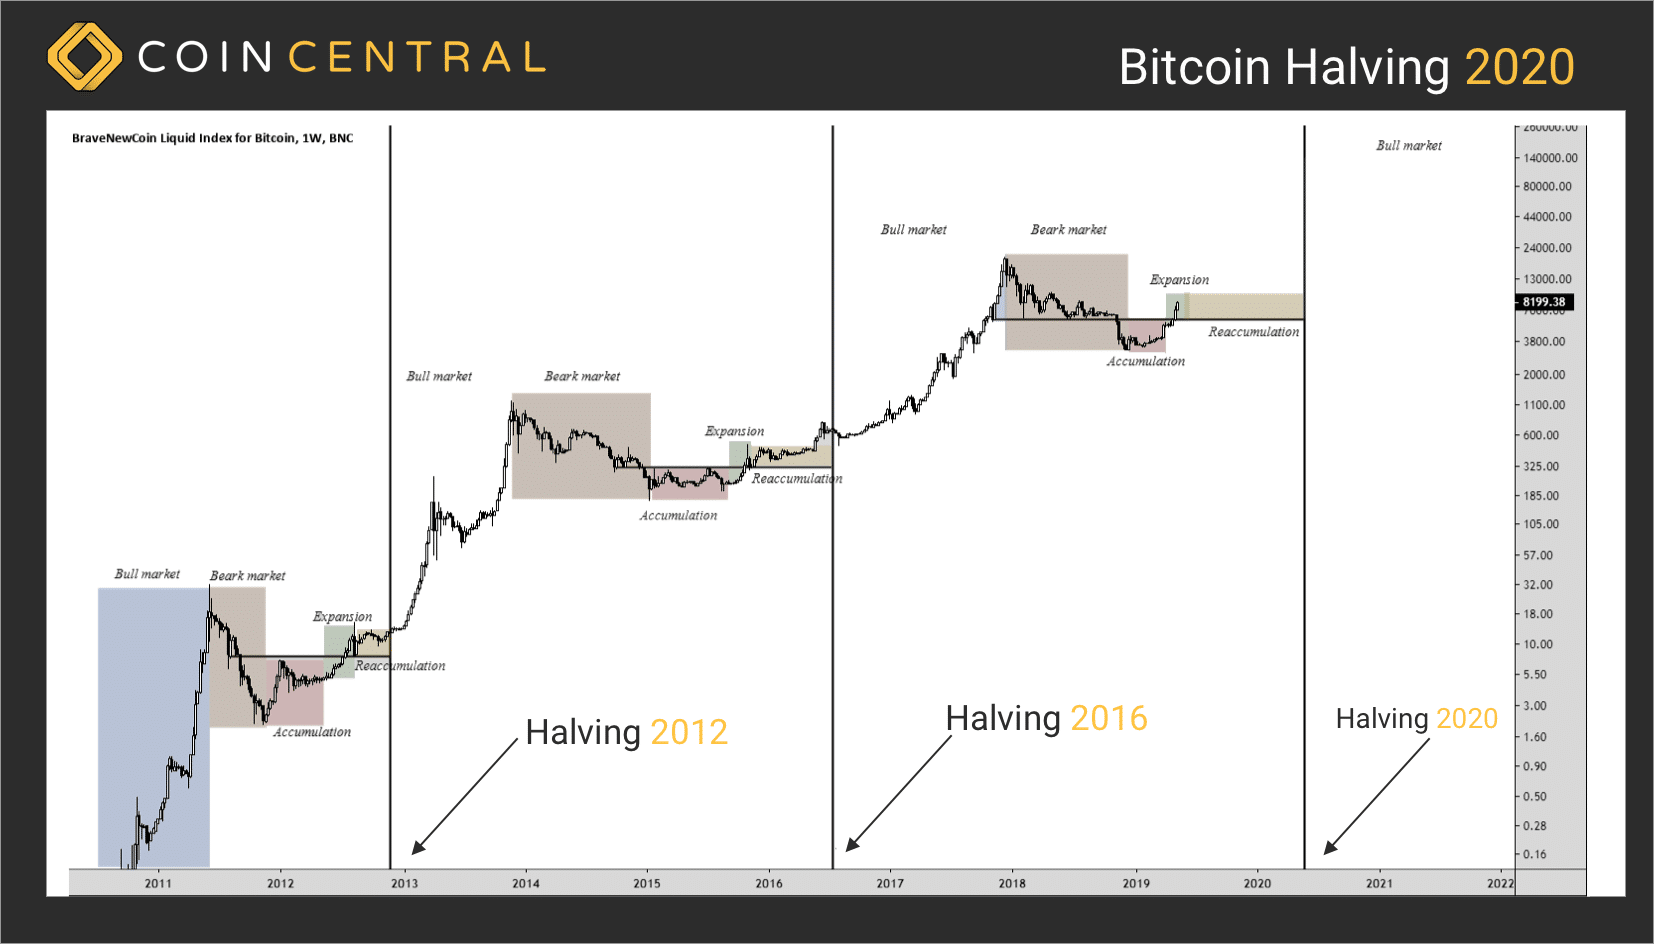 Will there be a price jump after bitcoin halvening 2020? Only time will tell.